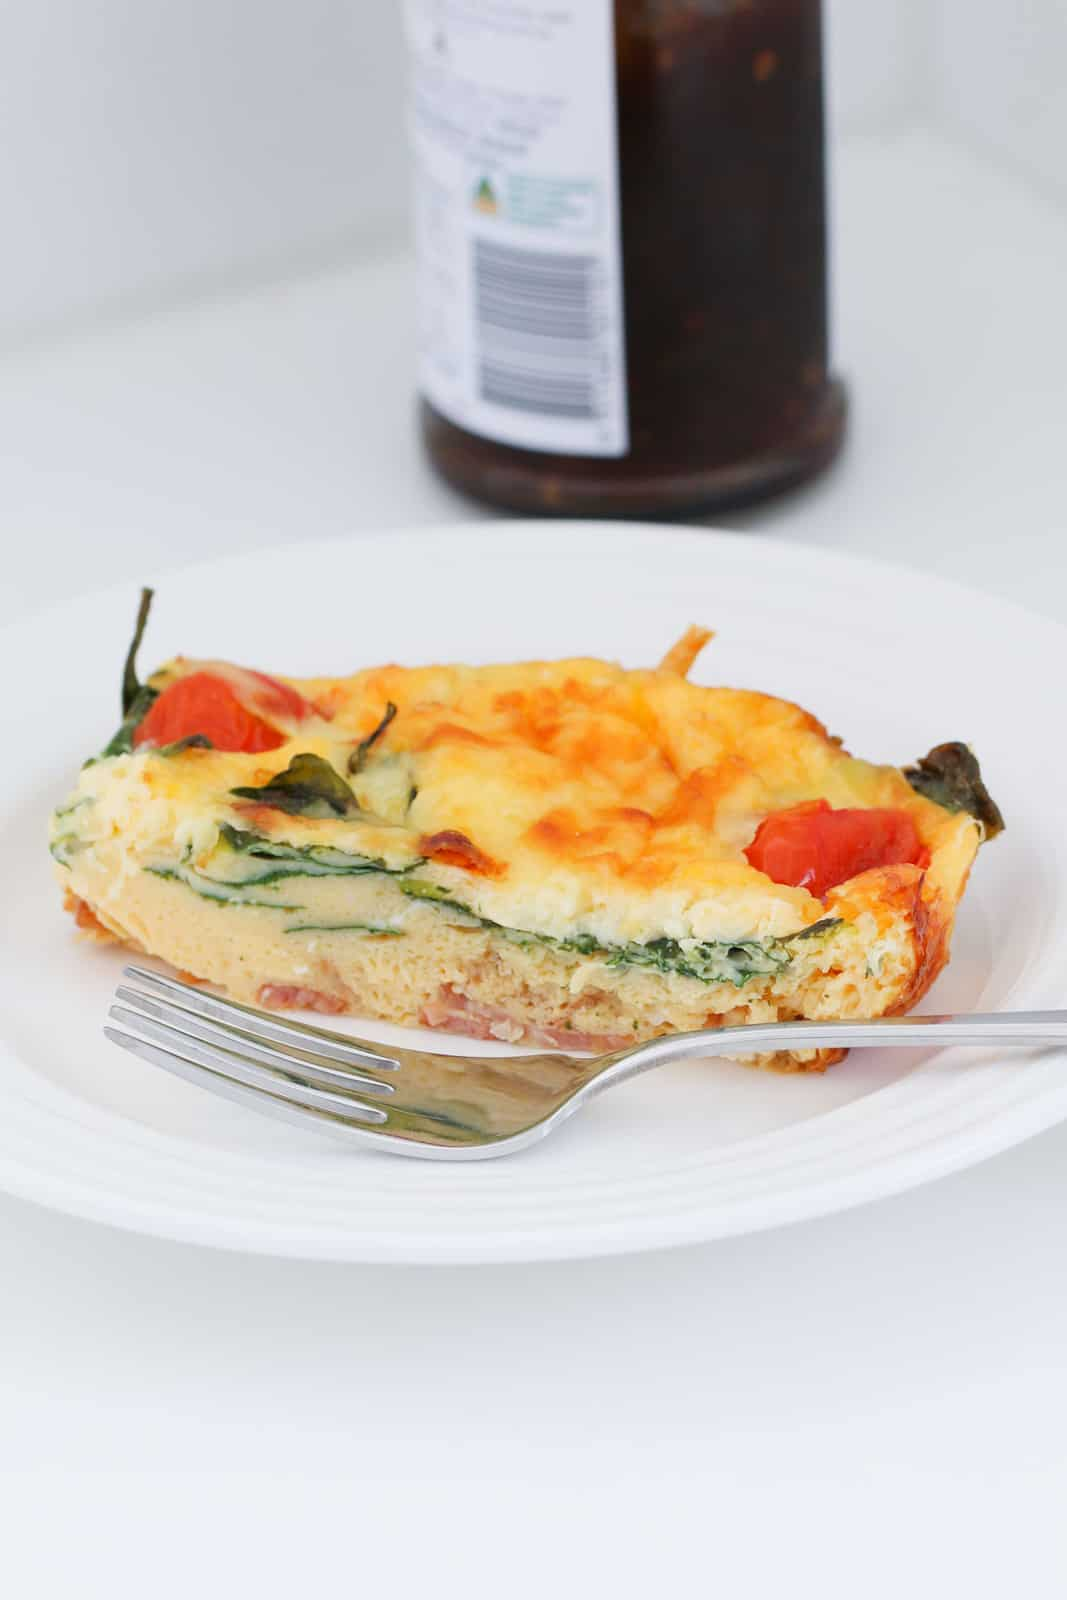 A piece of frittata on a plate with a fork in front.